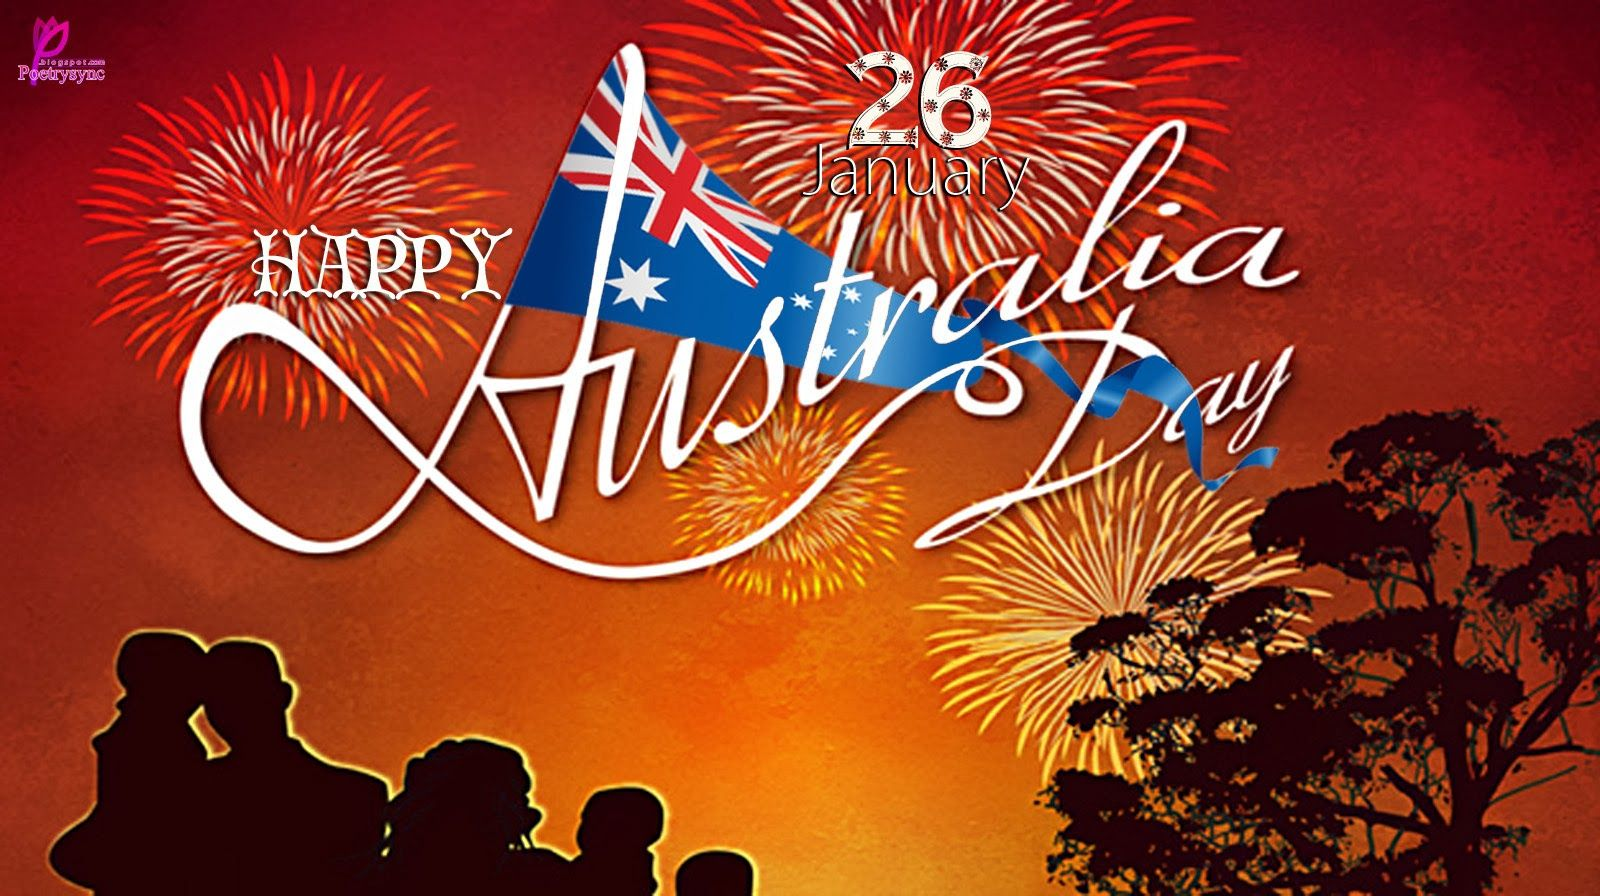 Happy Australia Day Night Fireworks Card With Wishes Greetings